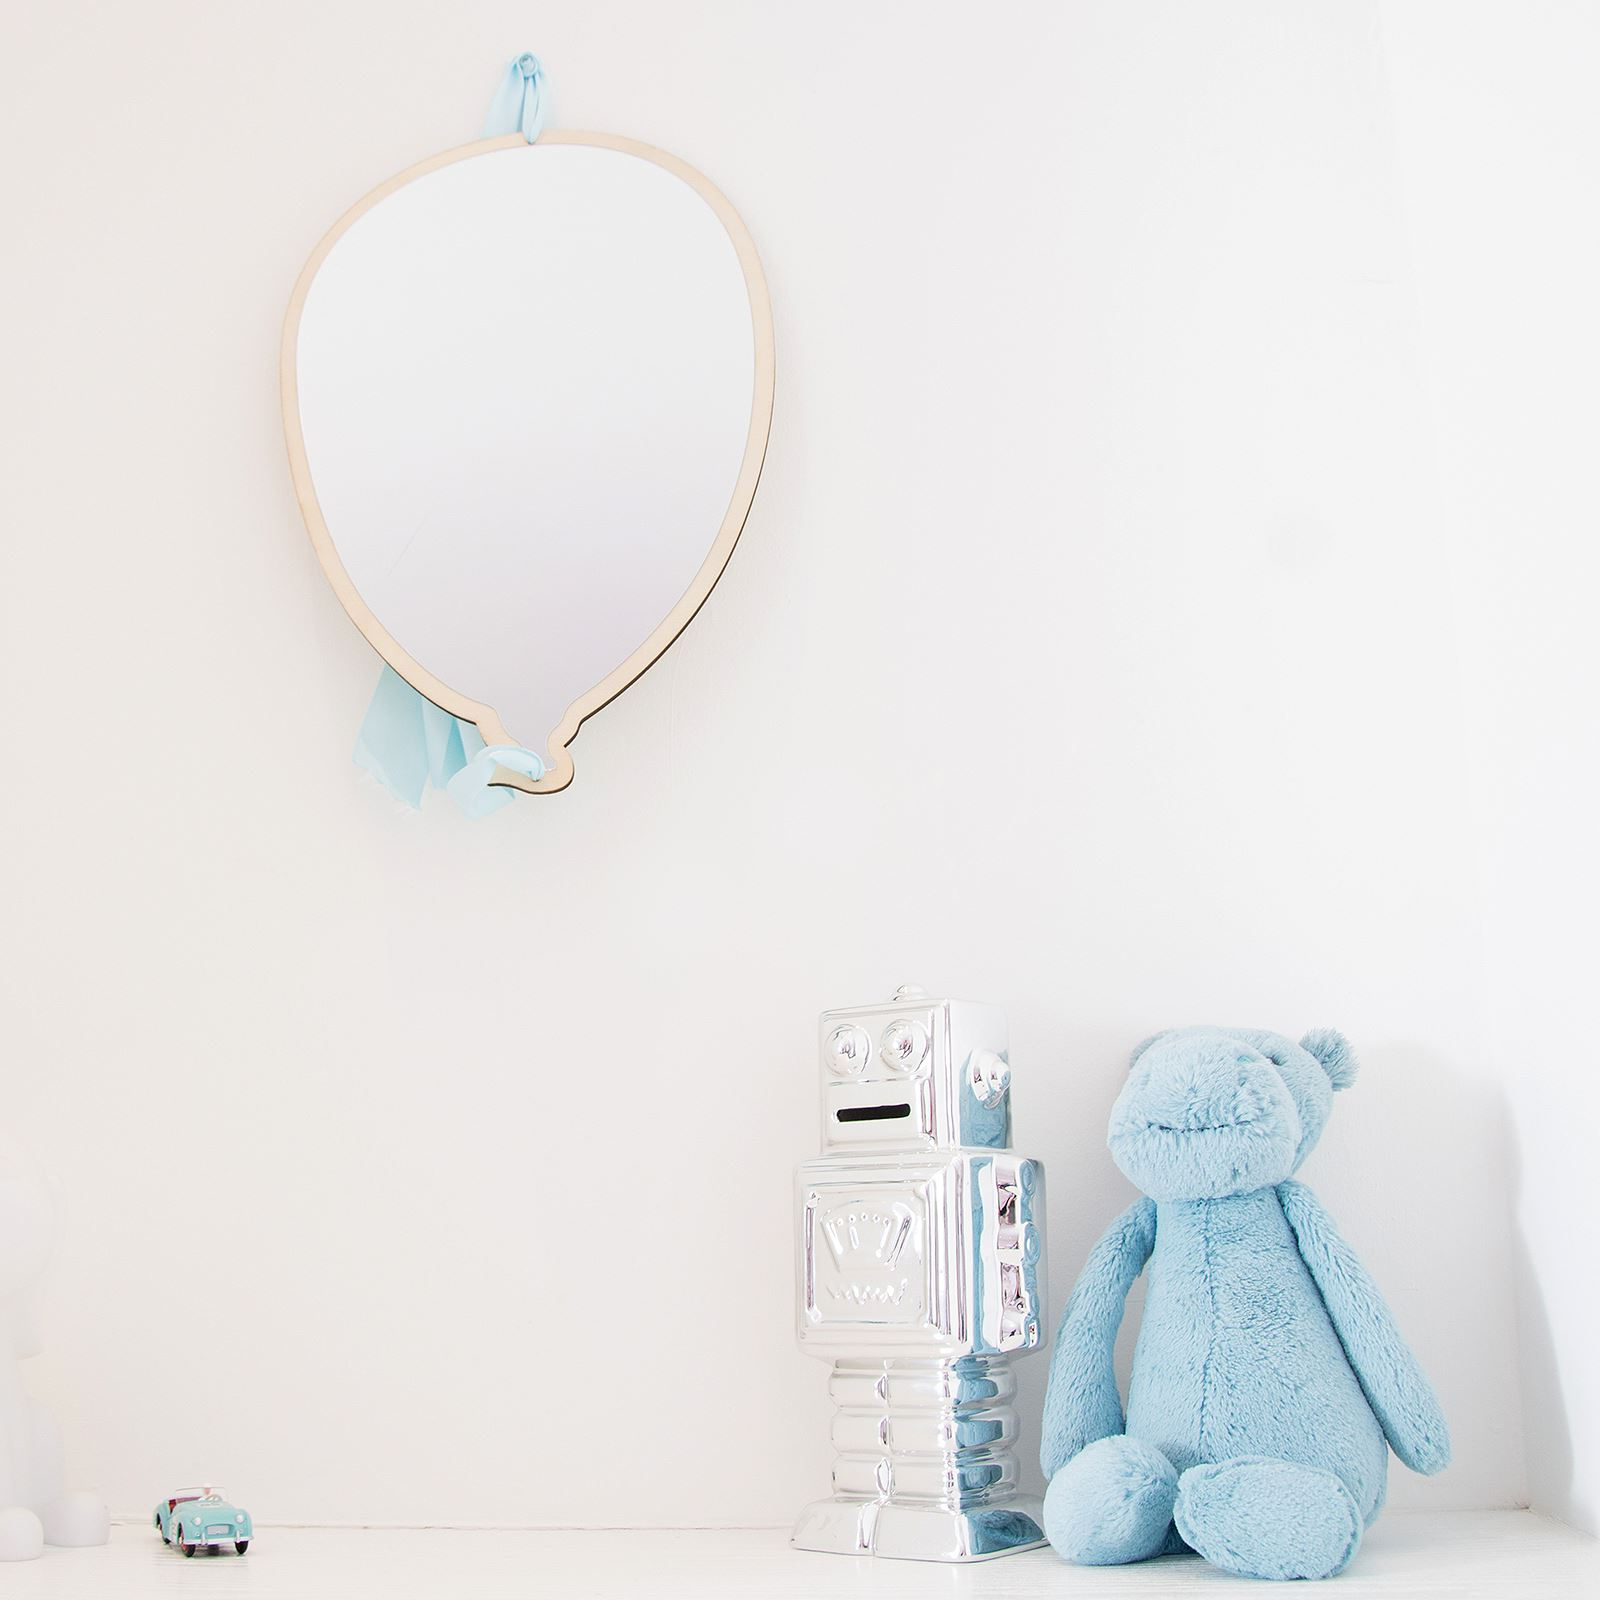 Most Up To Date Details About Children's Room Wall Decor Mirror Baloon Kids Bedroom Mounted Wall Sticker Art Inside Kids Wall Mirrors (View 20 of 20)